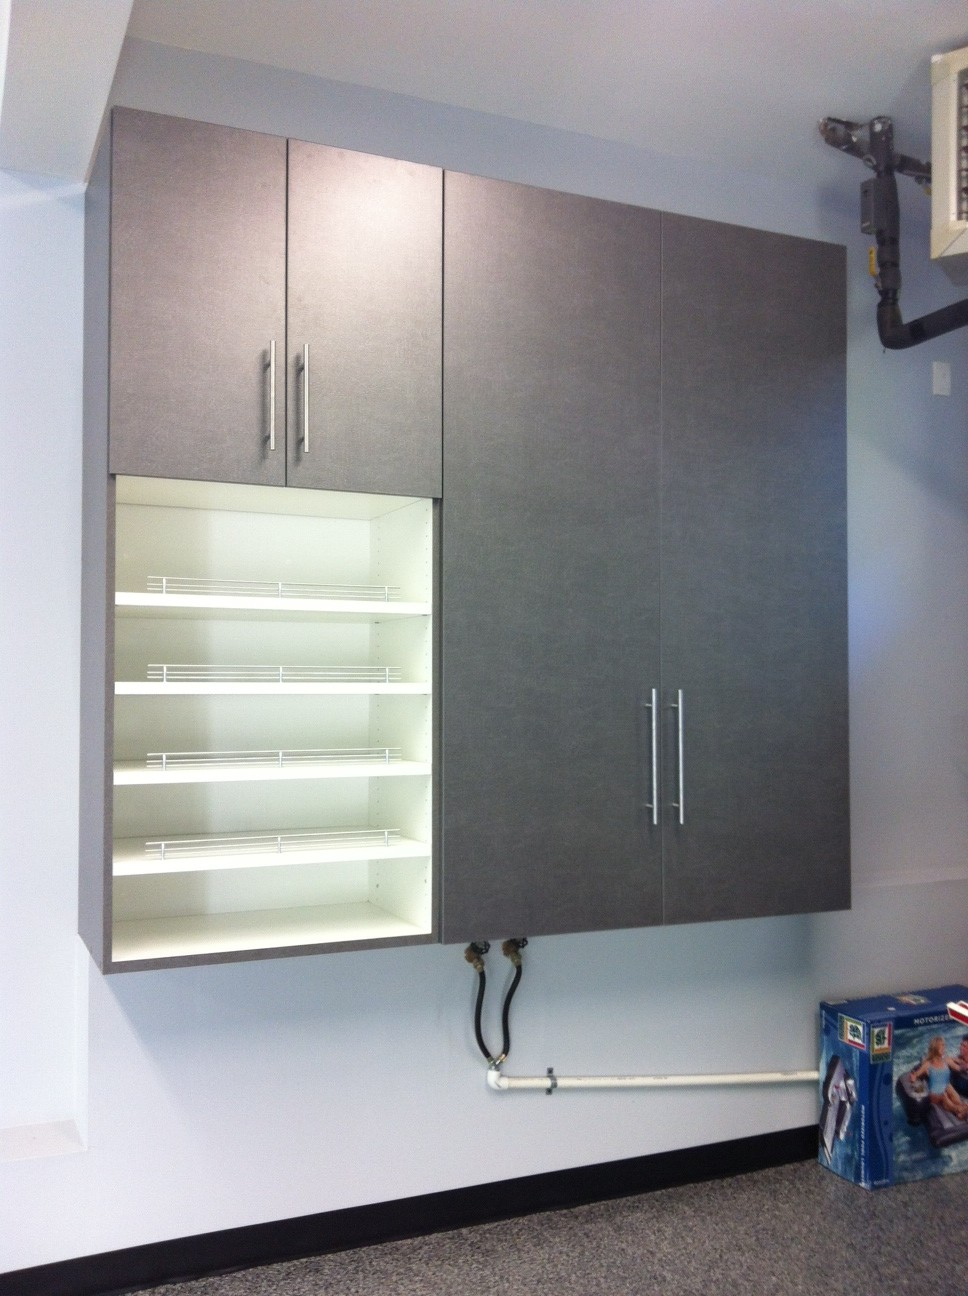 Wall Cabinet with built in shoe rack.